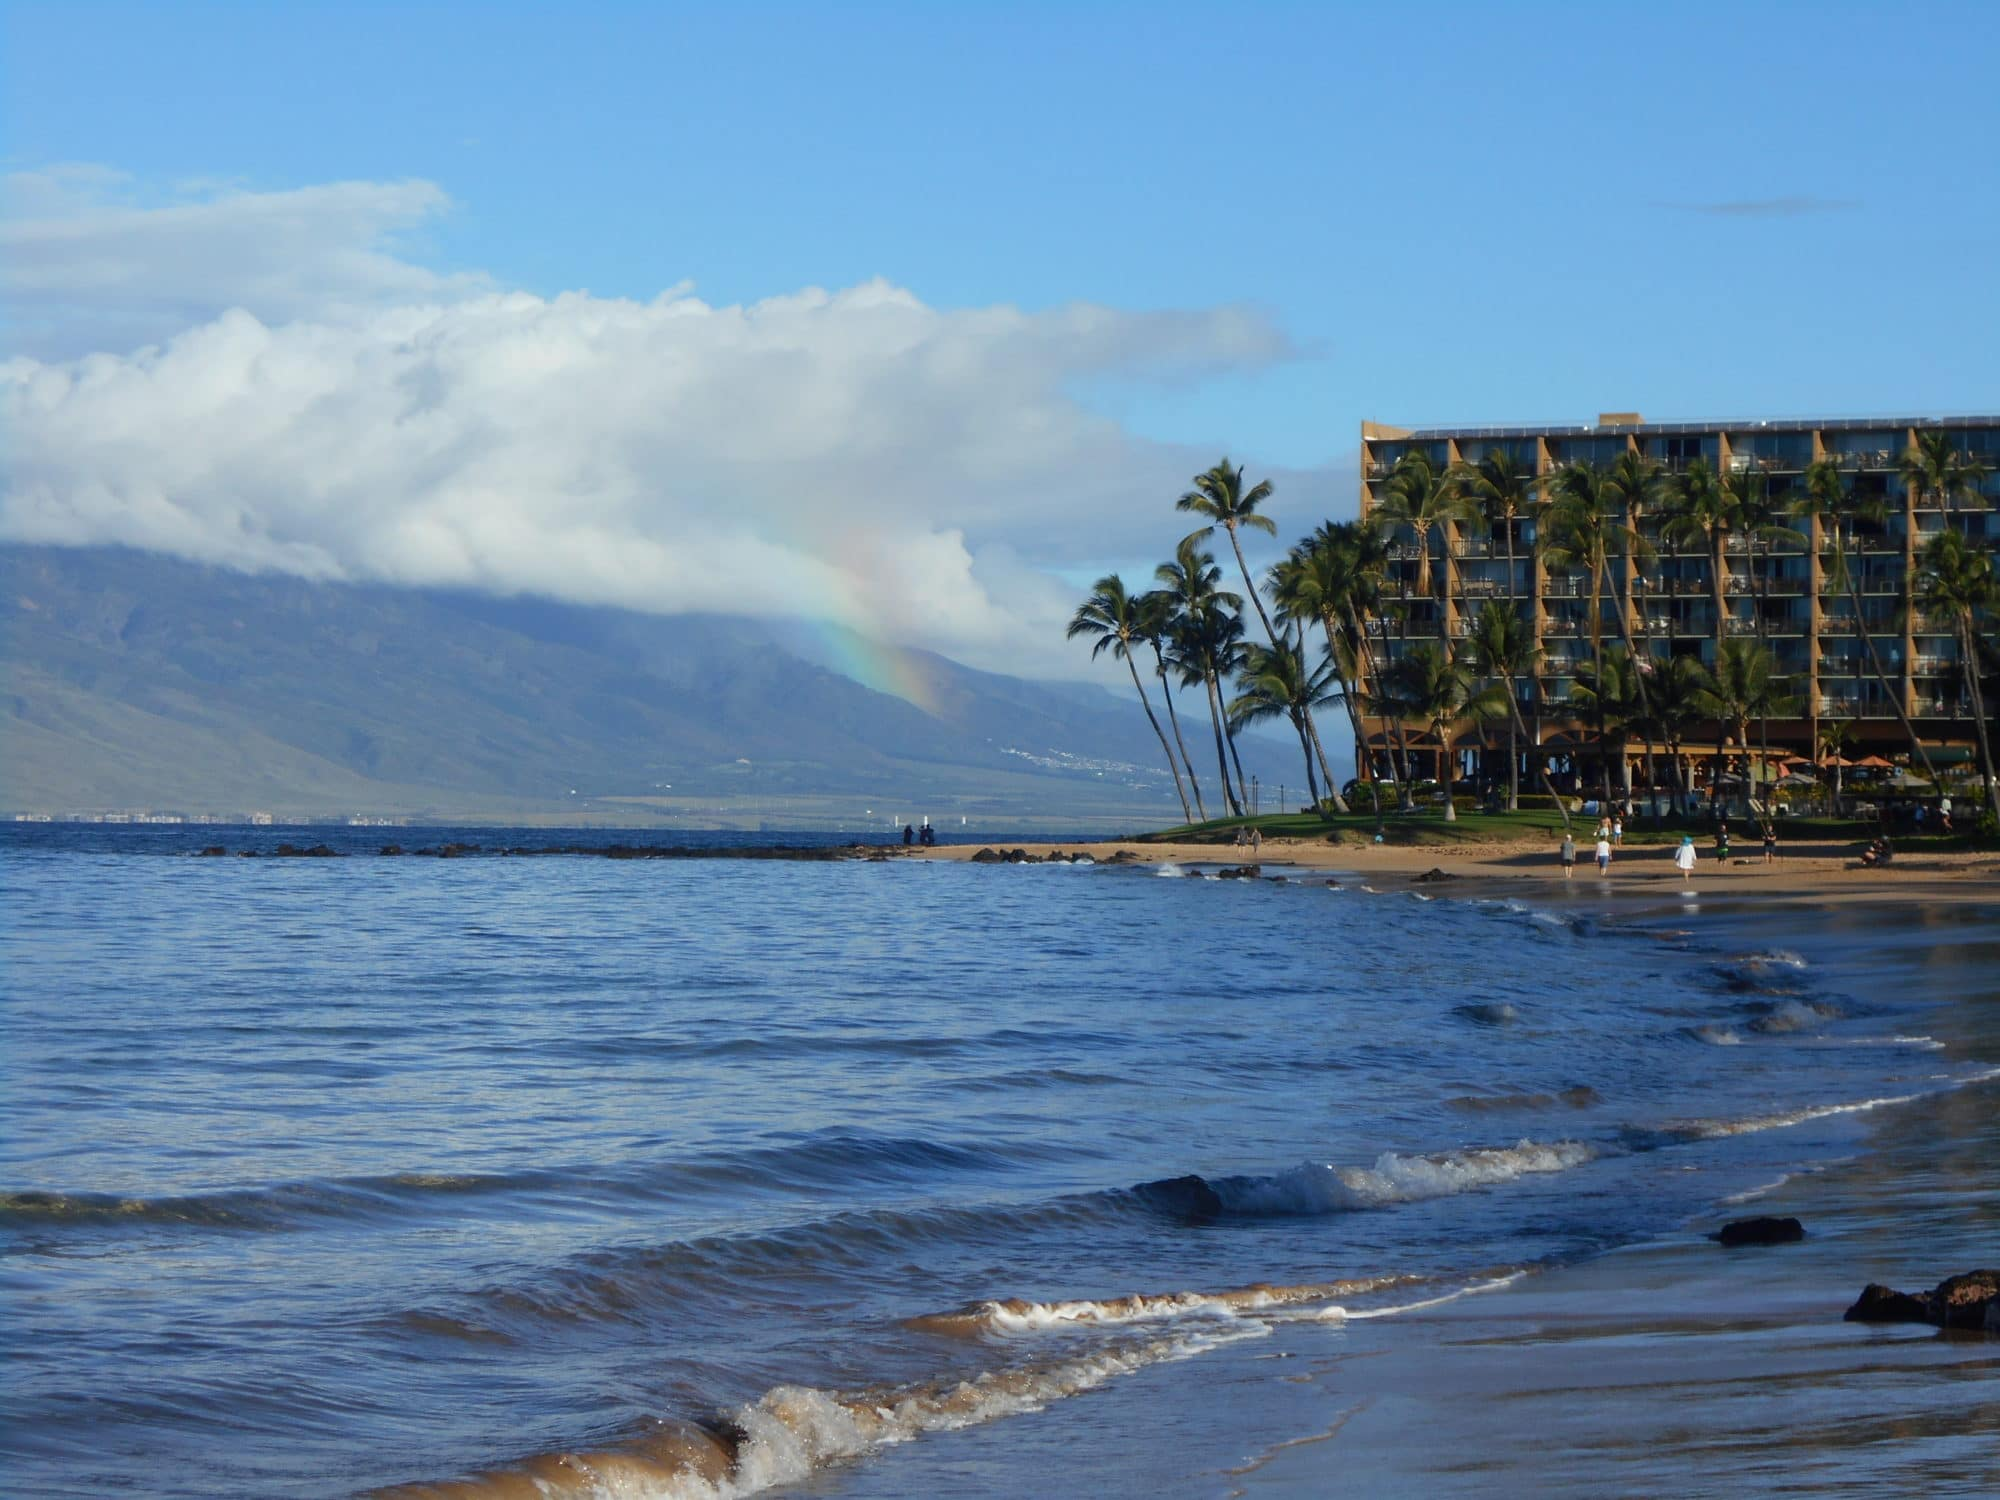 Maui beaches open only for exercise and swimming